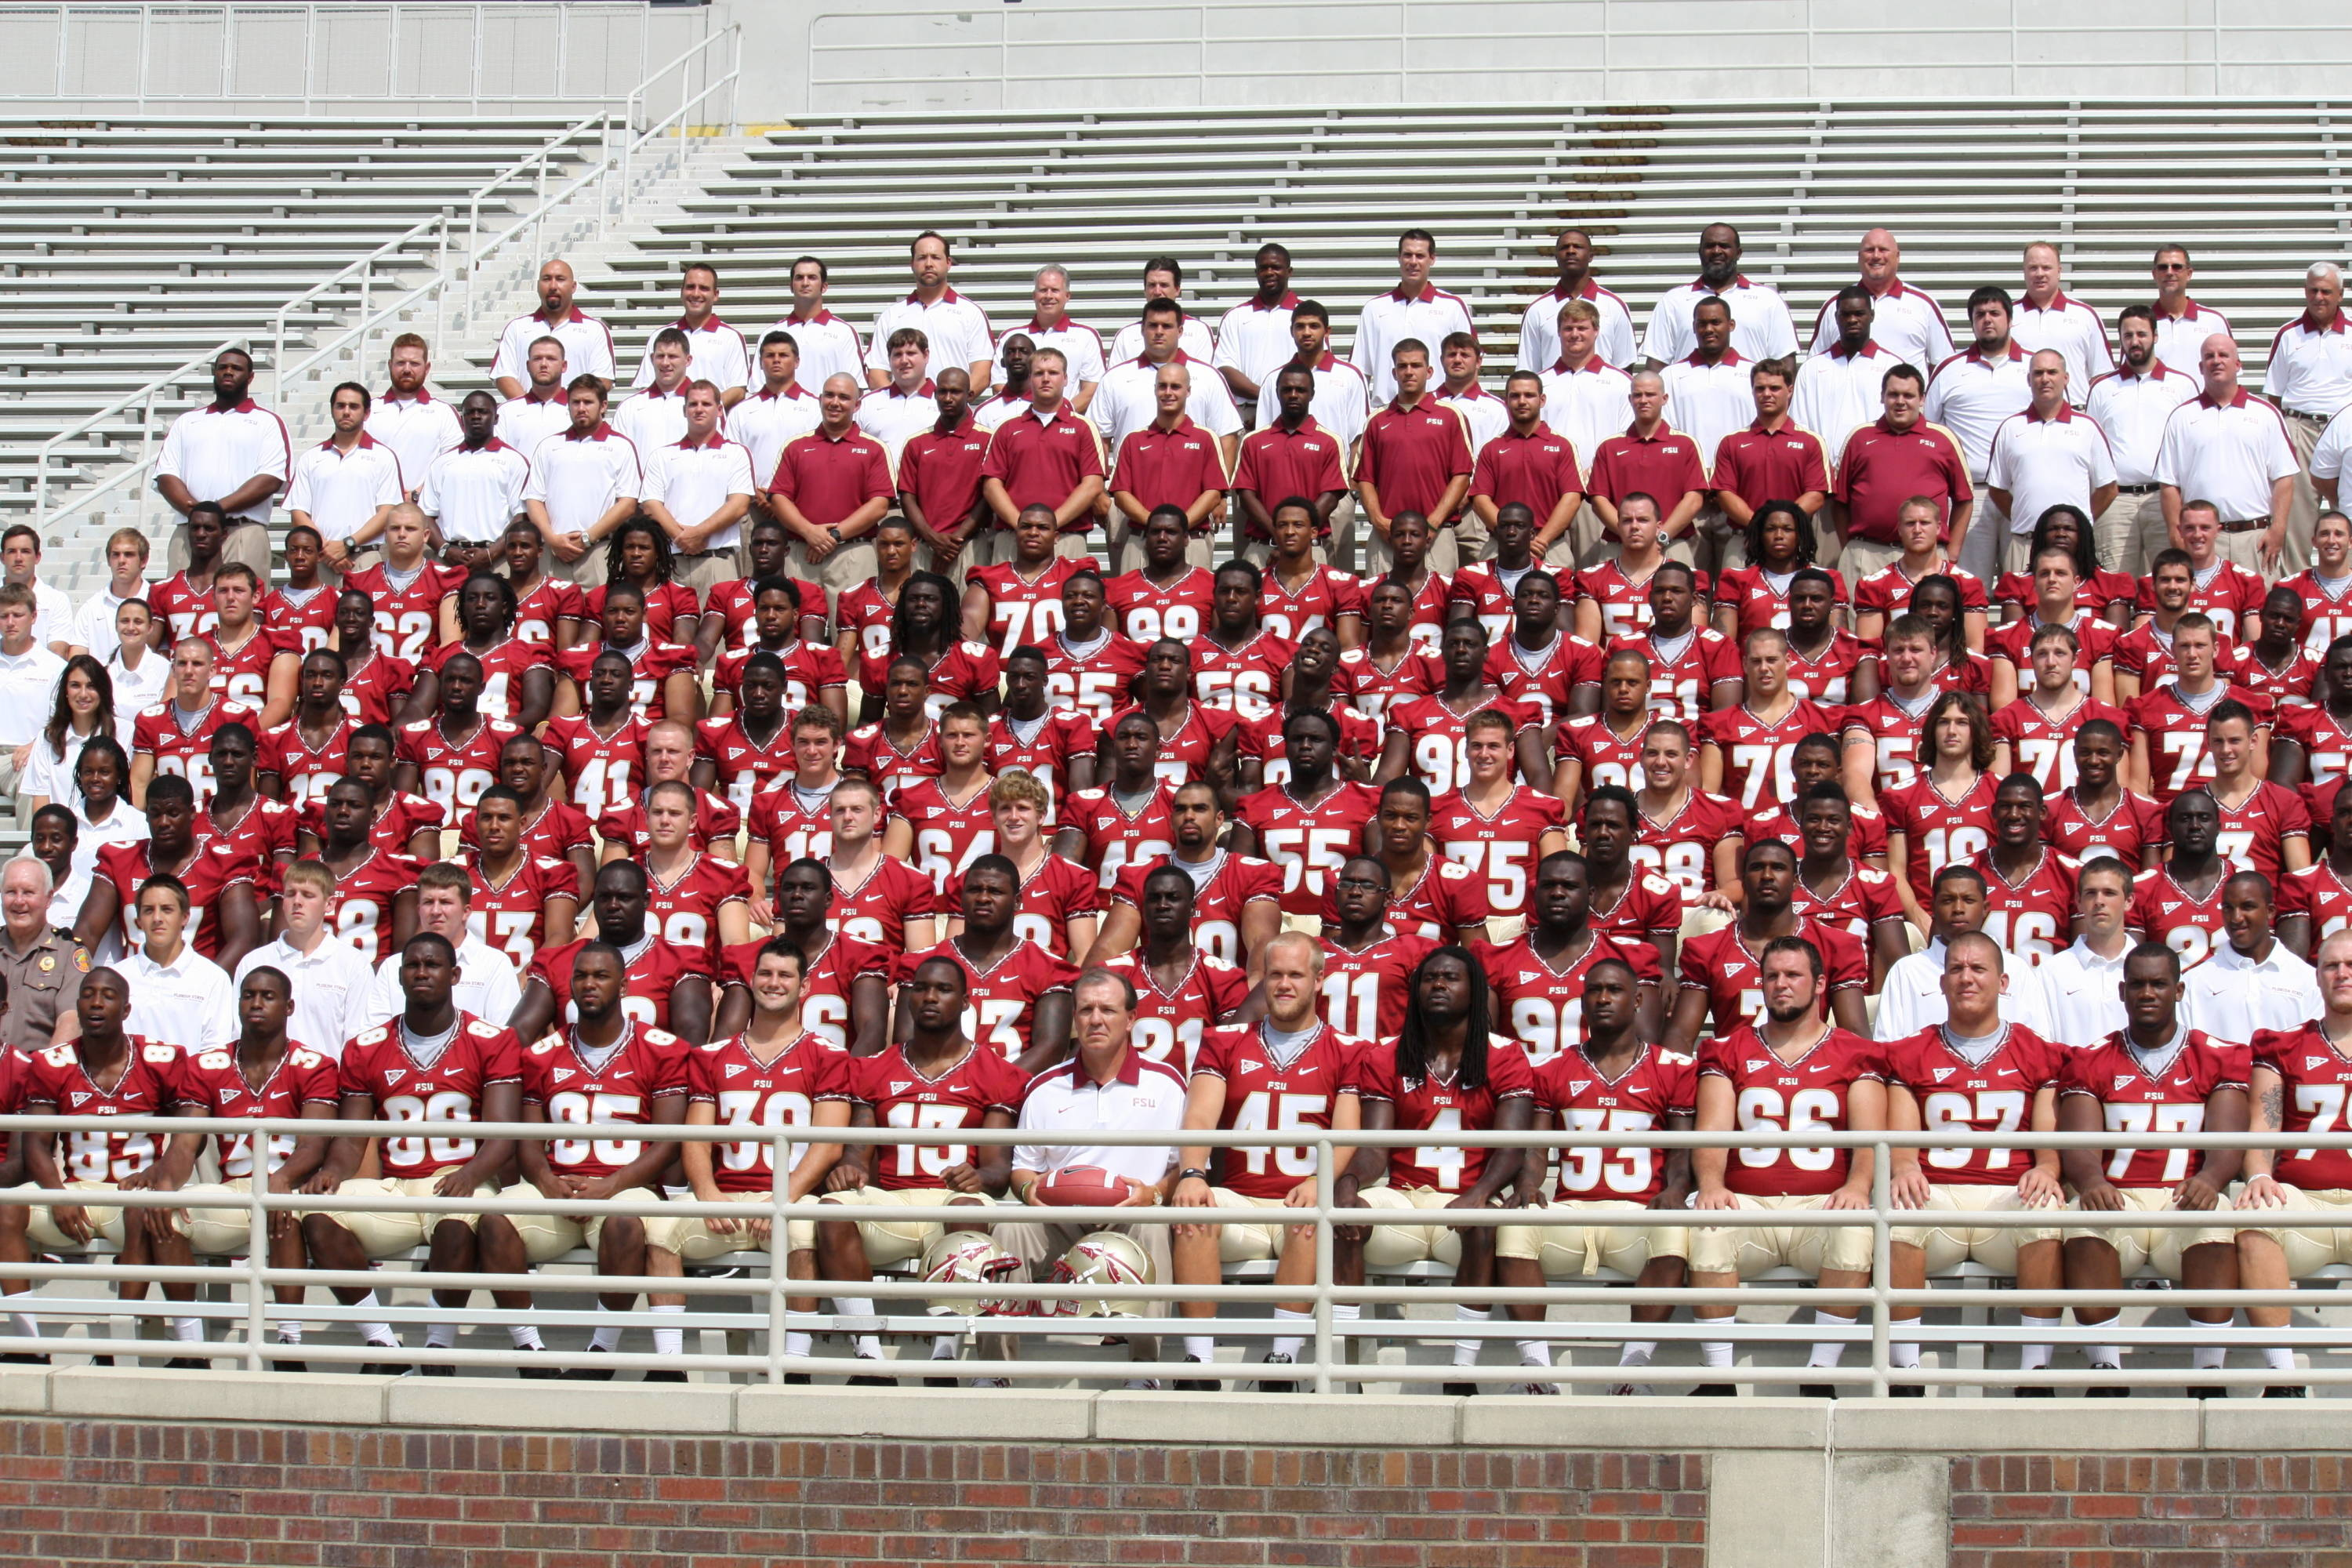 A look at the 2011 Florida State football team.